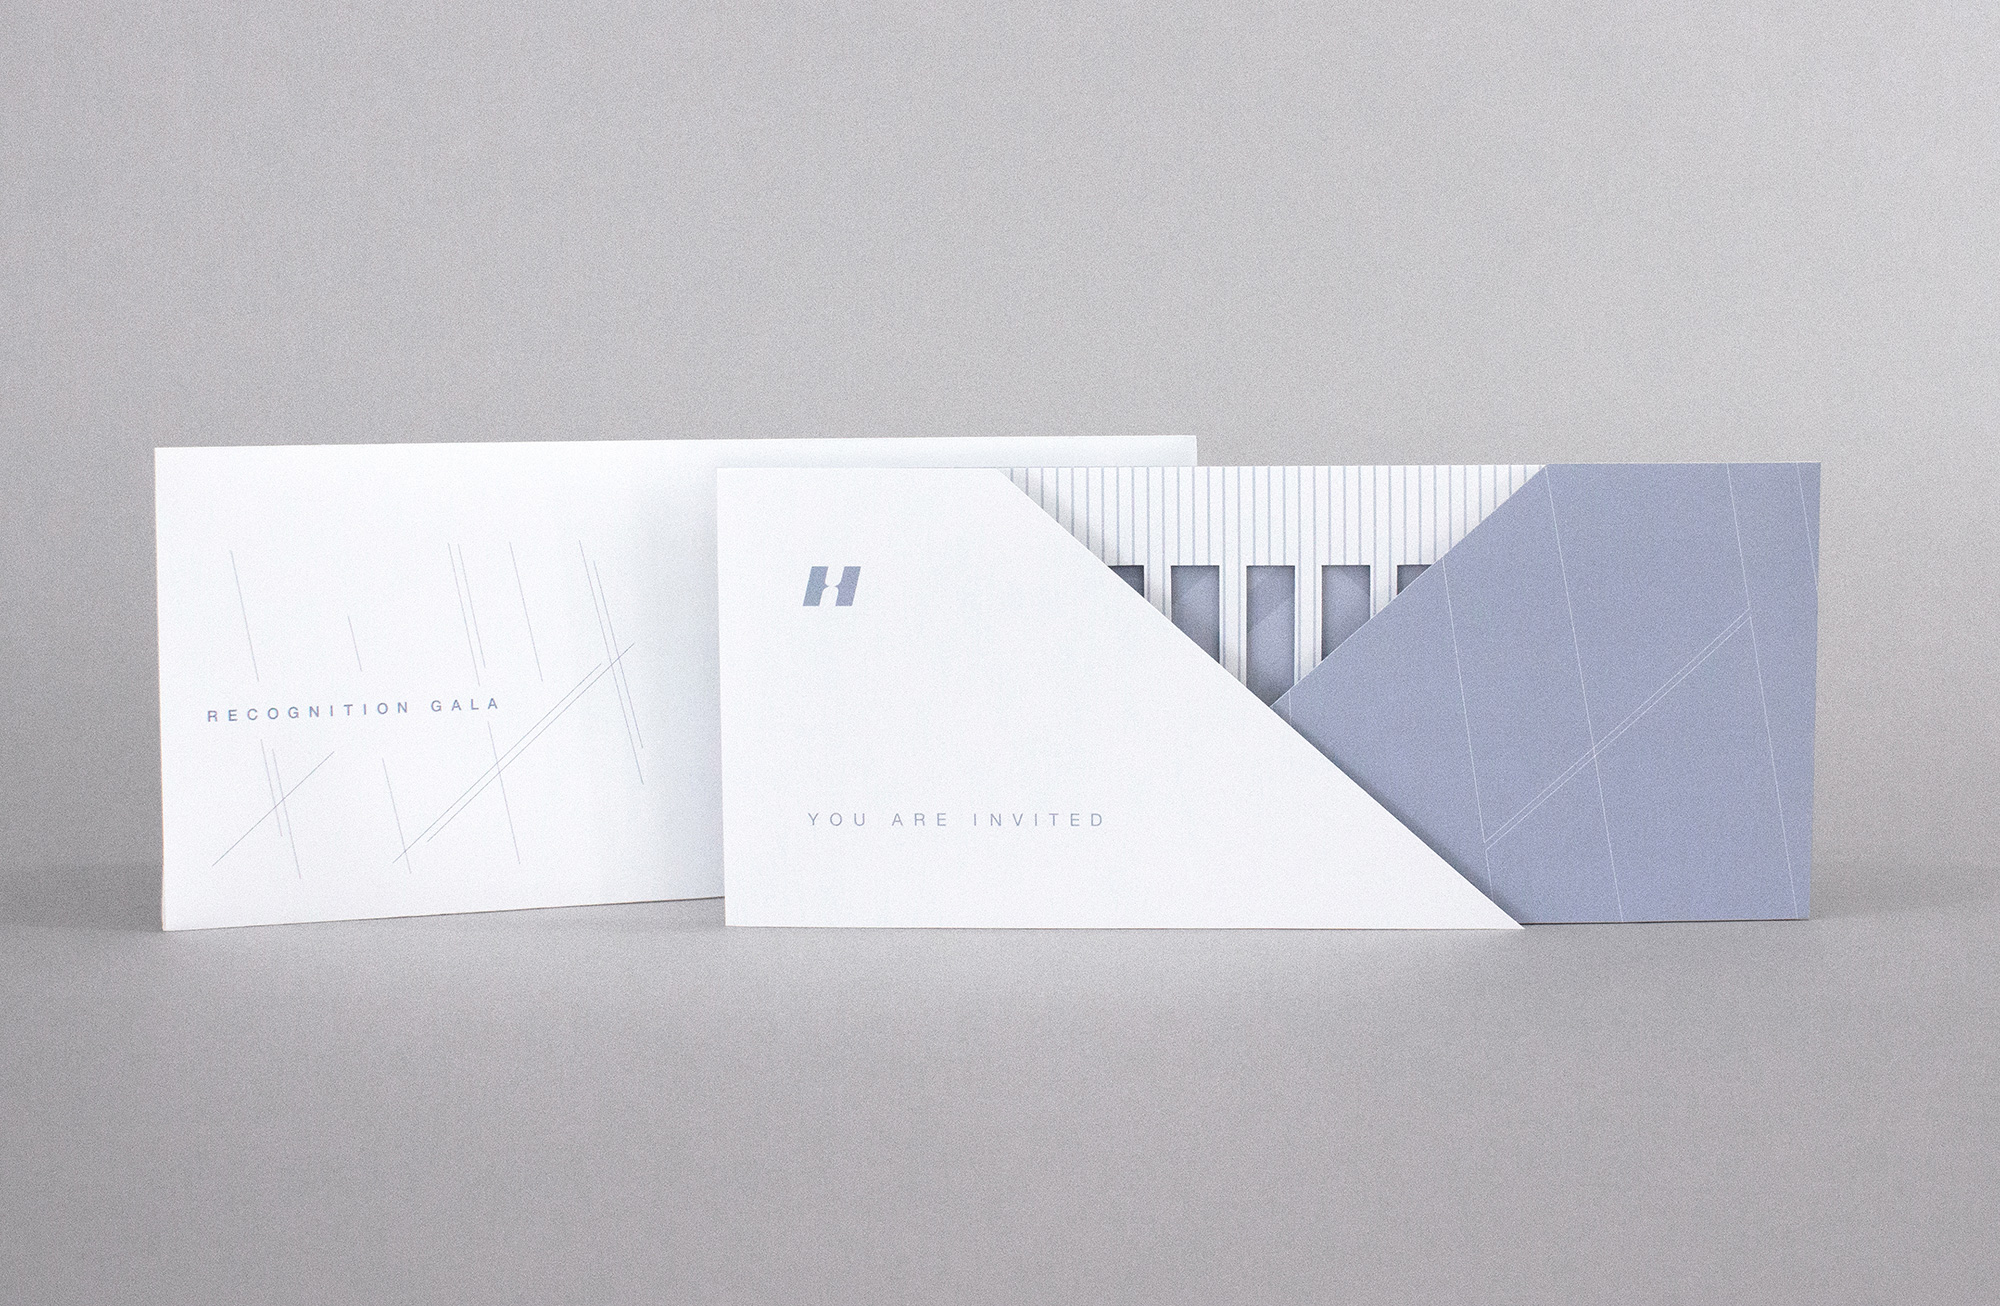 Whitney Museum hospital gala event invitation branding and design with unique structure